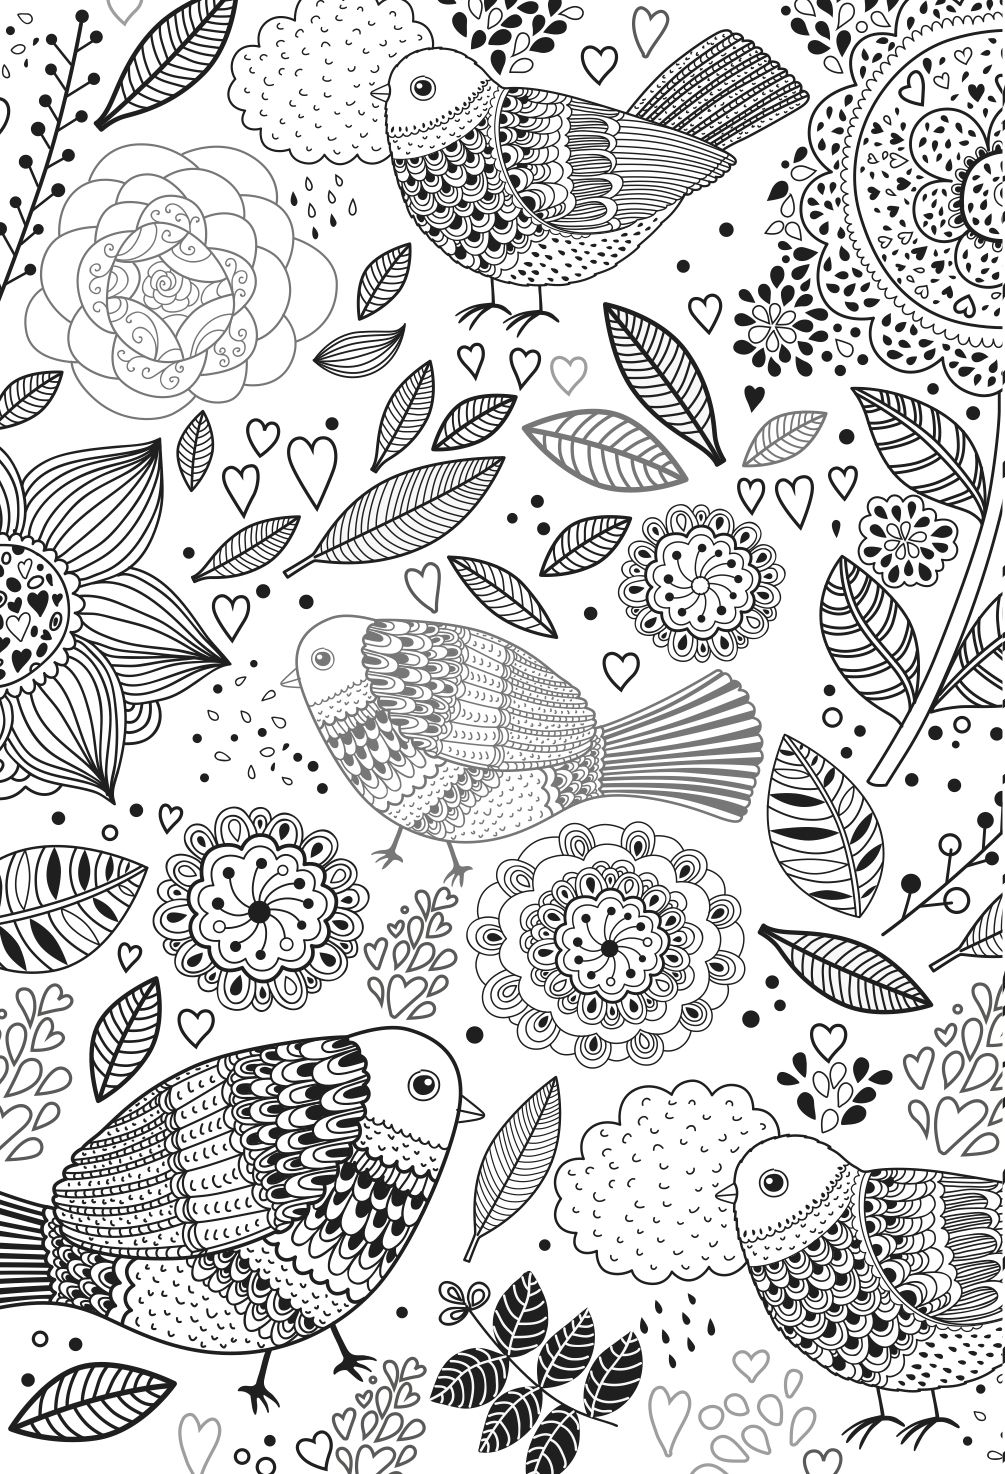 Colouring books for adults coloriages ado adultes - Dessin a colorier pour adulte ...